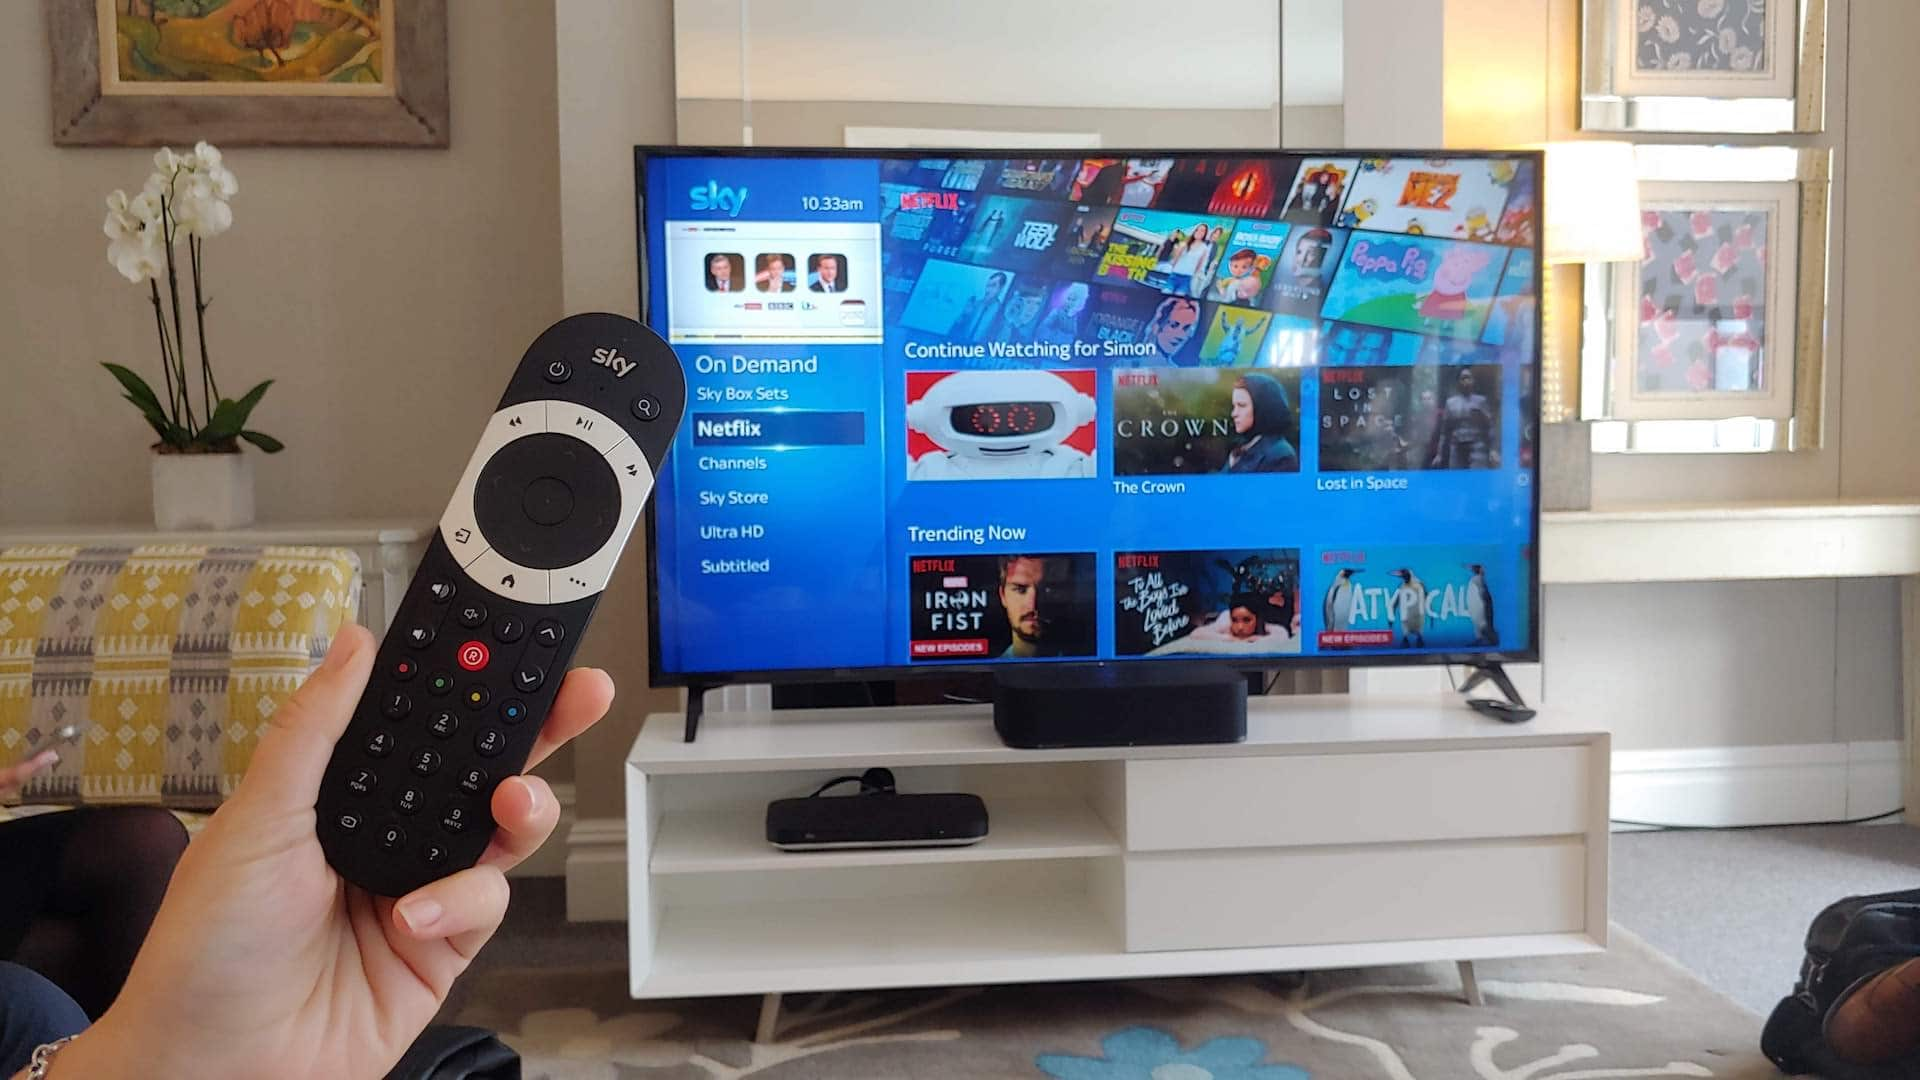 Where is The Reset Button on Sky Q Hub? [Quick Answer]